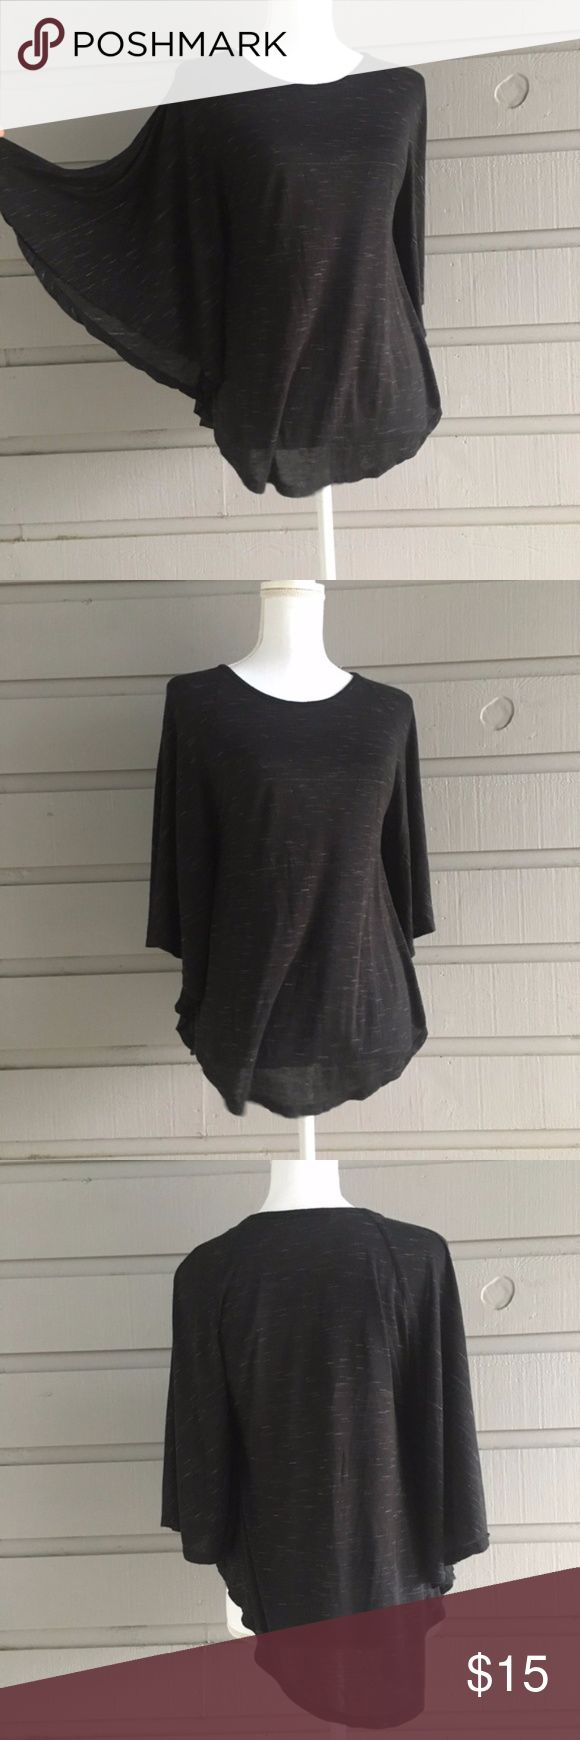 Heathered black dolman batwing top Small hole in the back by the tag. Questions and offers welcome! Urban Rose Tops